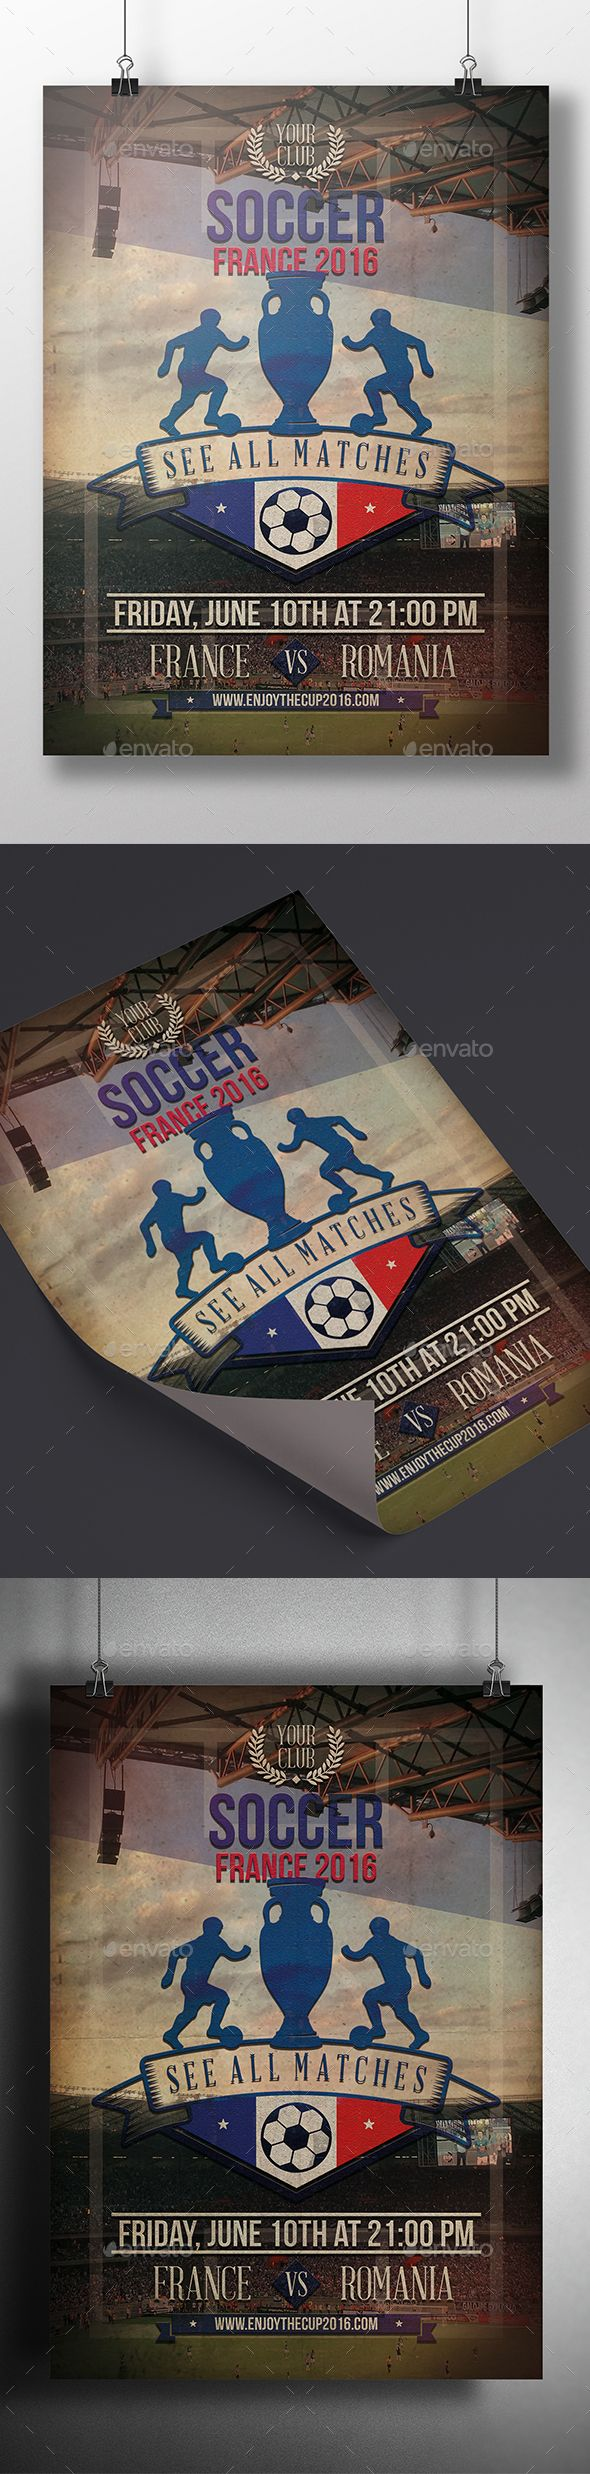 Soccer Cup 2016 Flyer Template